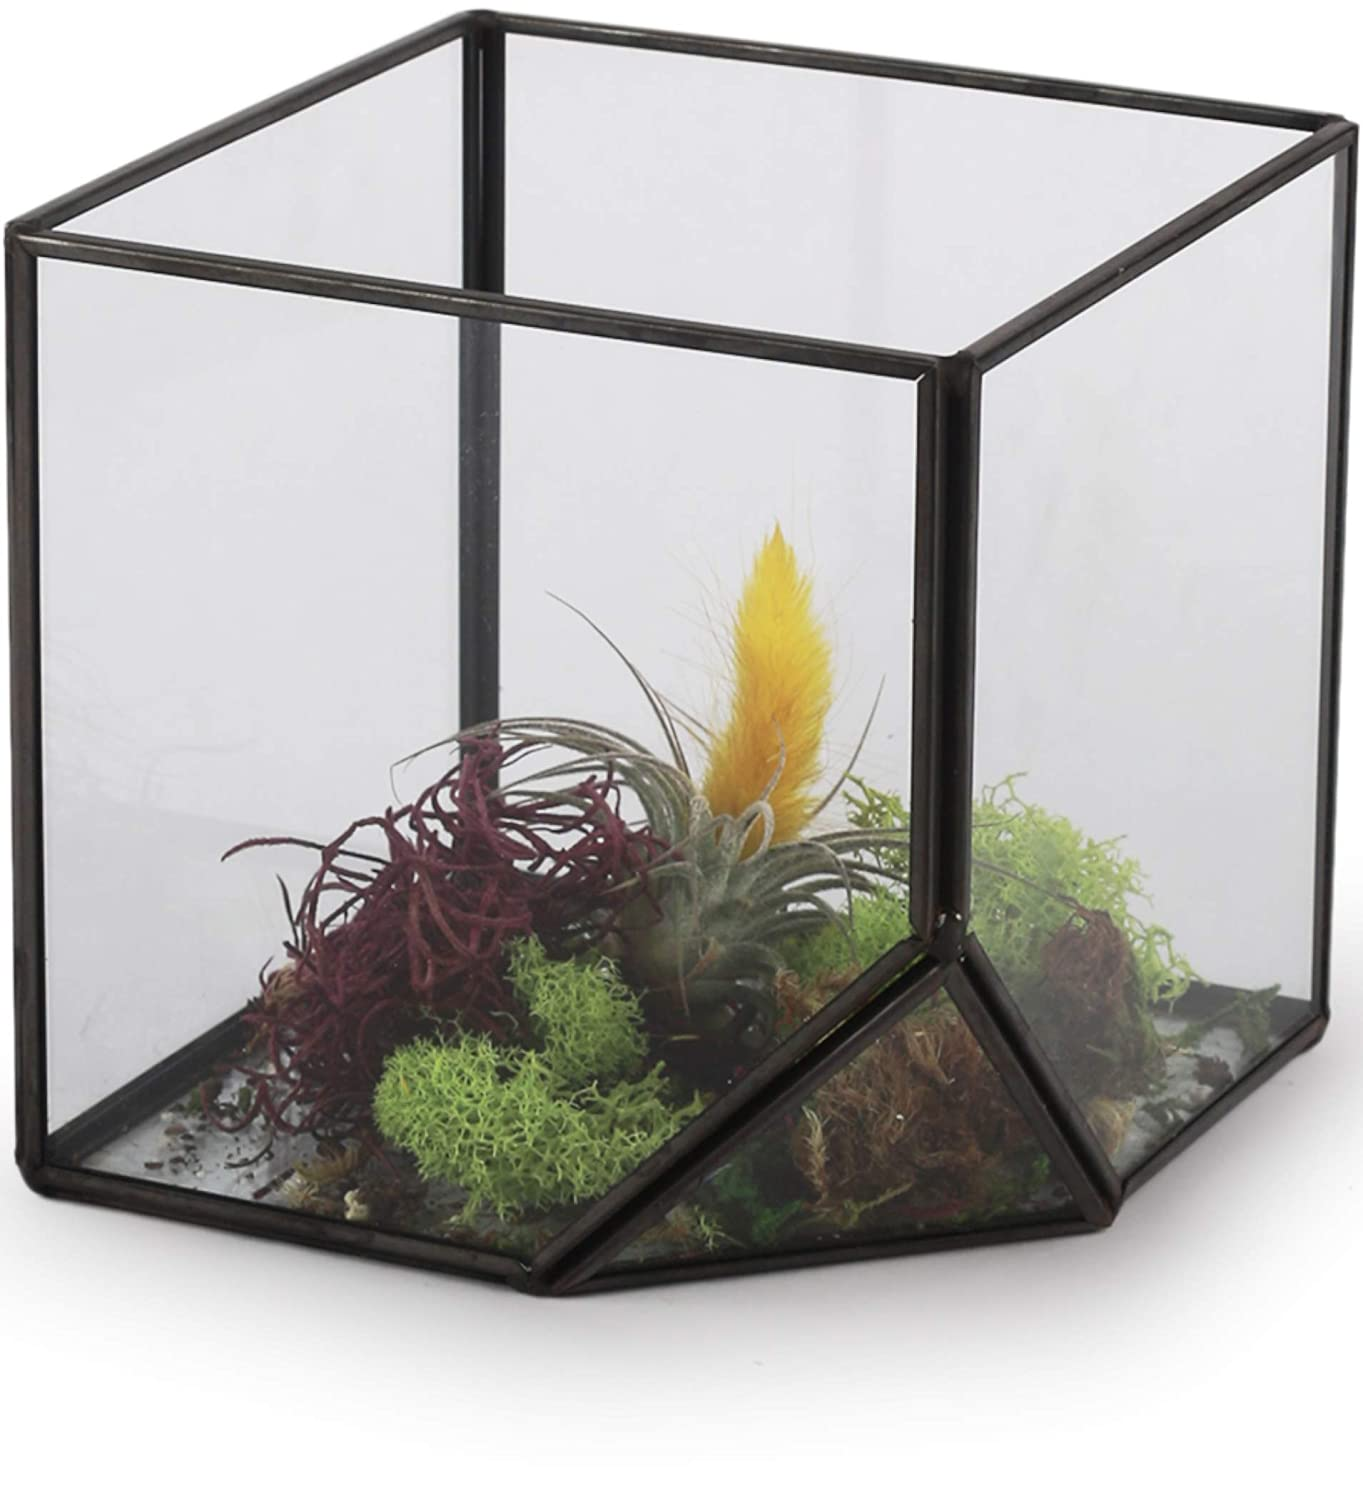 "Circleware 03501 Terraria Square Terrarium Clear-Glass with Metal Frame, Home Plant Decor Flower Balcony Display Box and Garden Gifts 4.13"", Black-4.13x4.13"